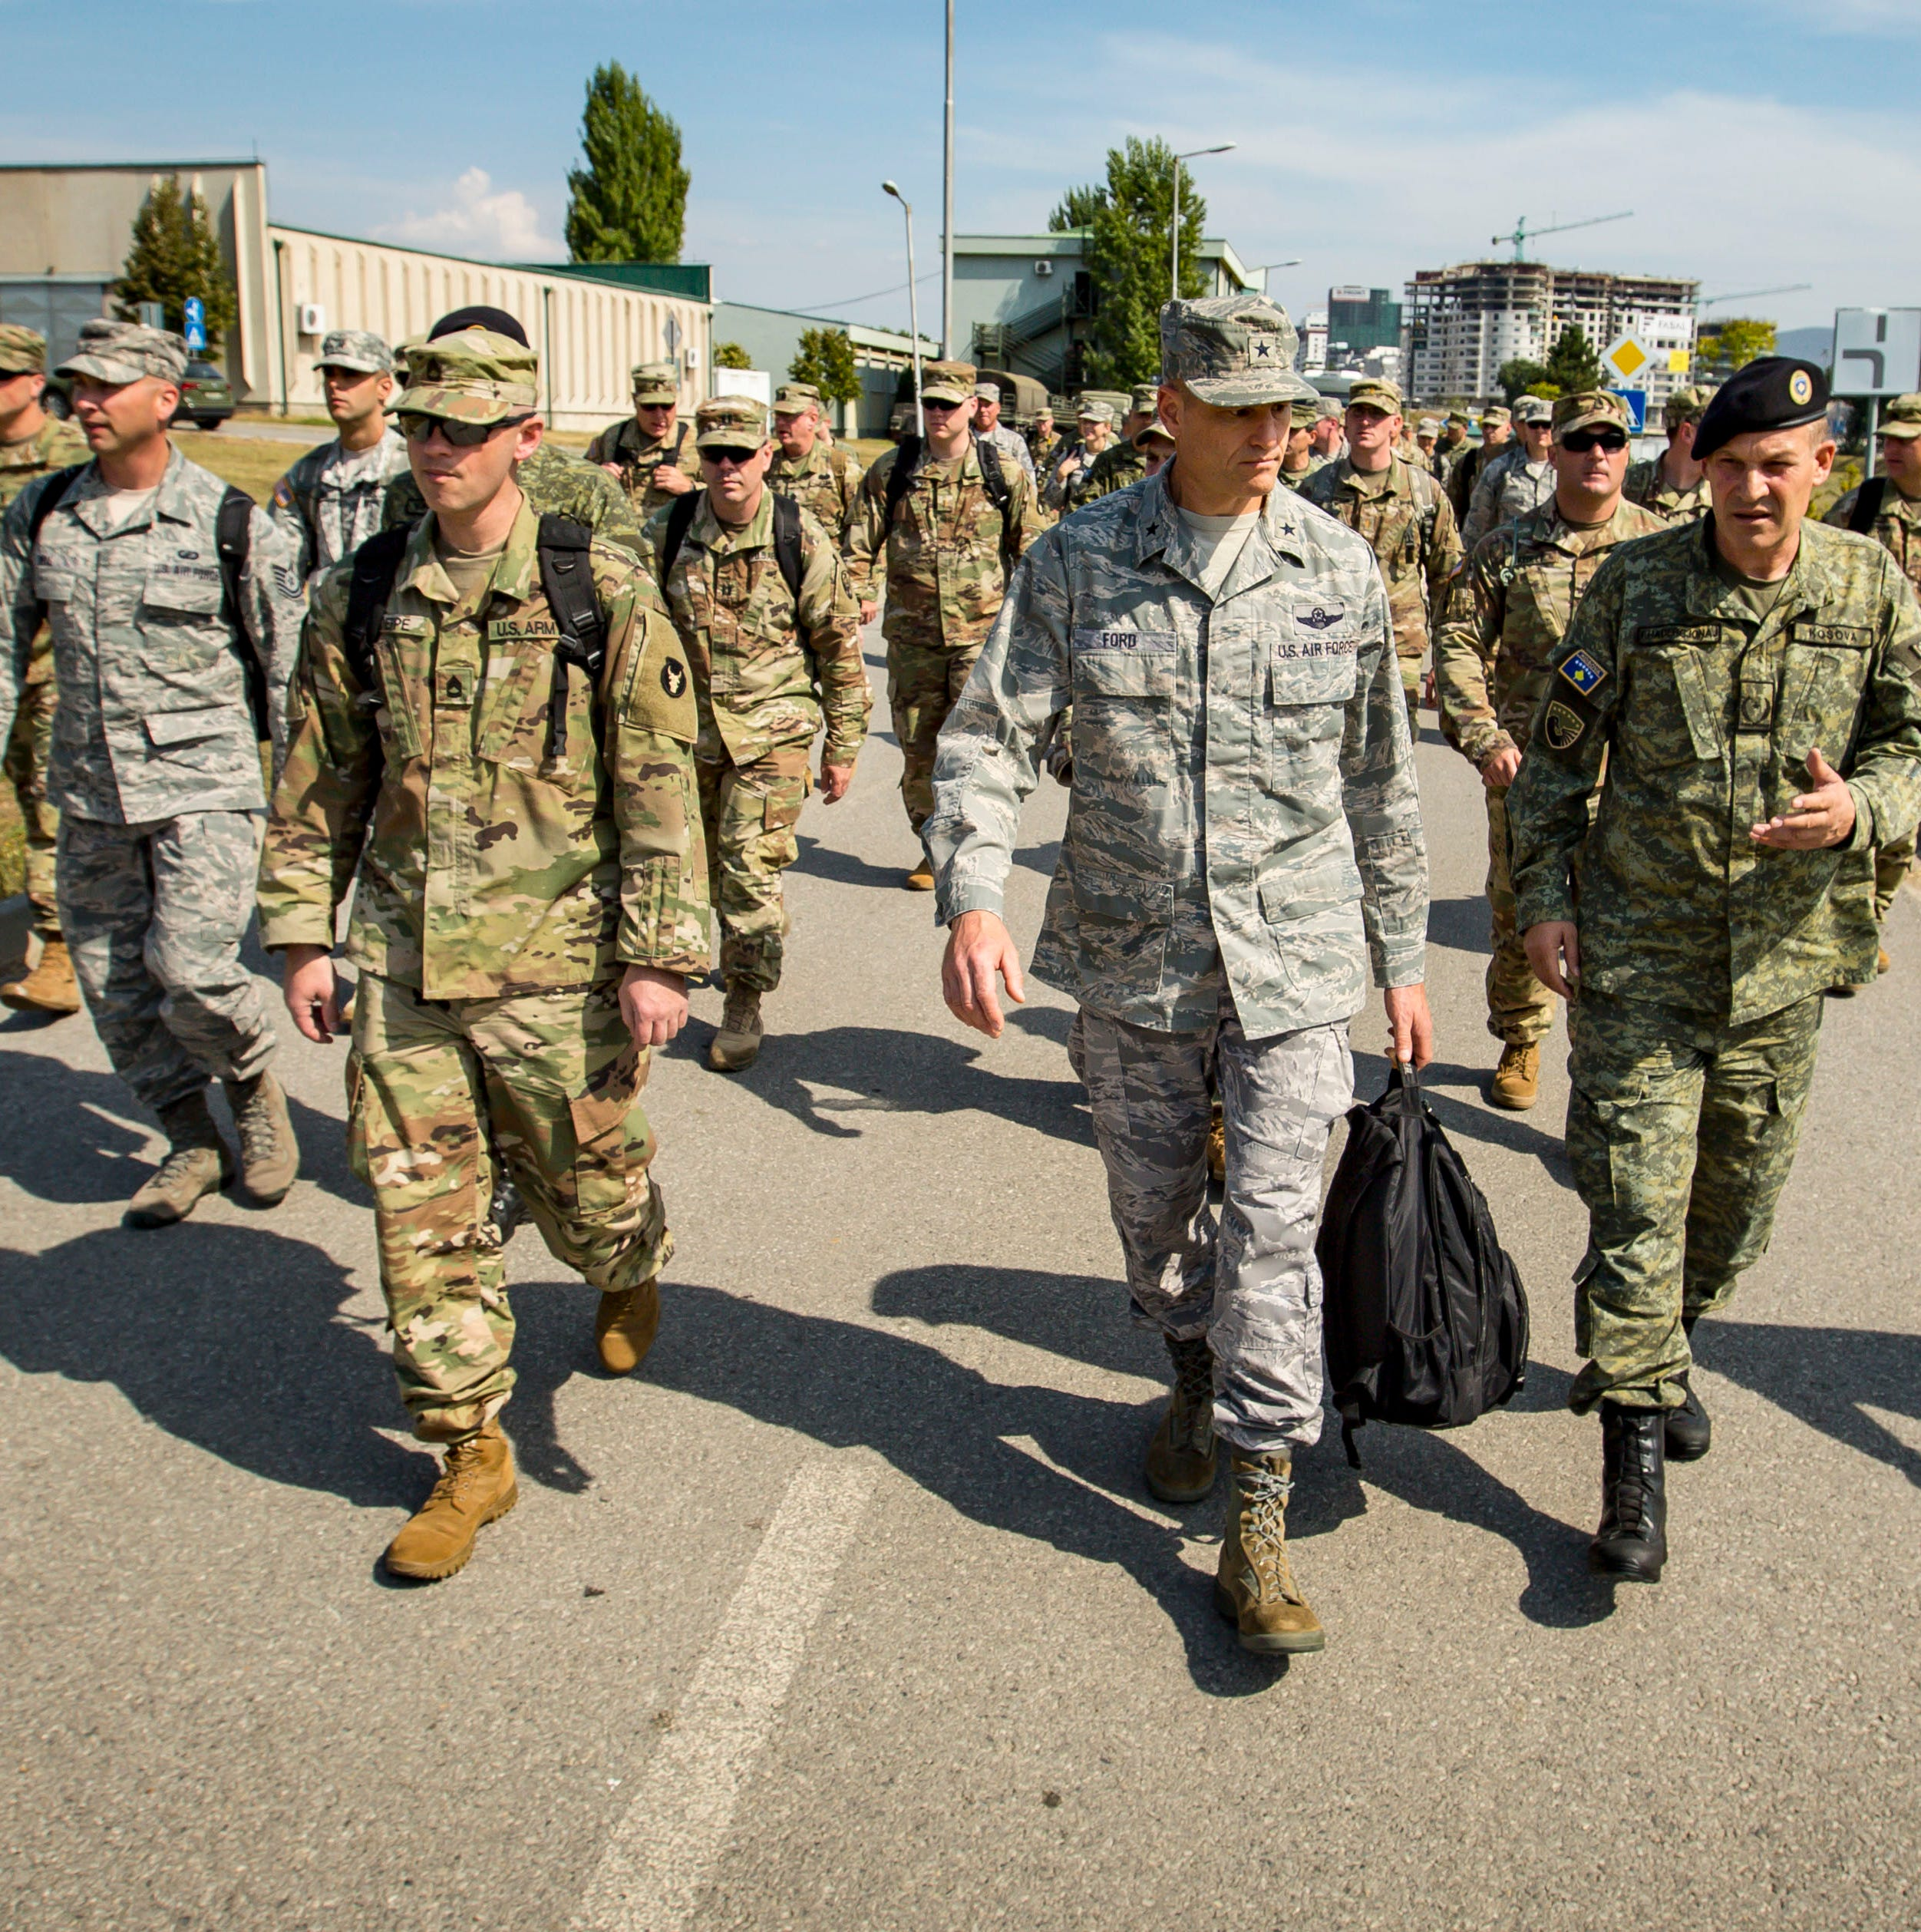 Brig. Gen. Shawn Ford, Deputy Adjutant General, Iowa Air National Guard, walks with members of the Kosovo Security Force at their base in Pristina, Kosovo, Sept. 18, 2018, during a staff ride in the country.